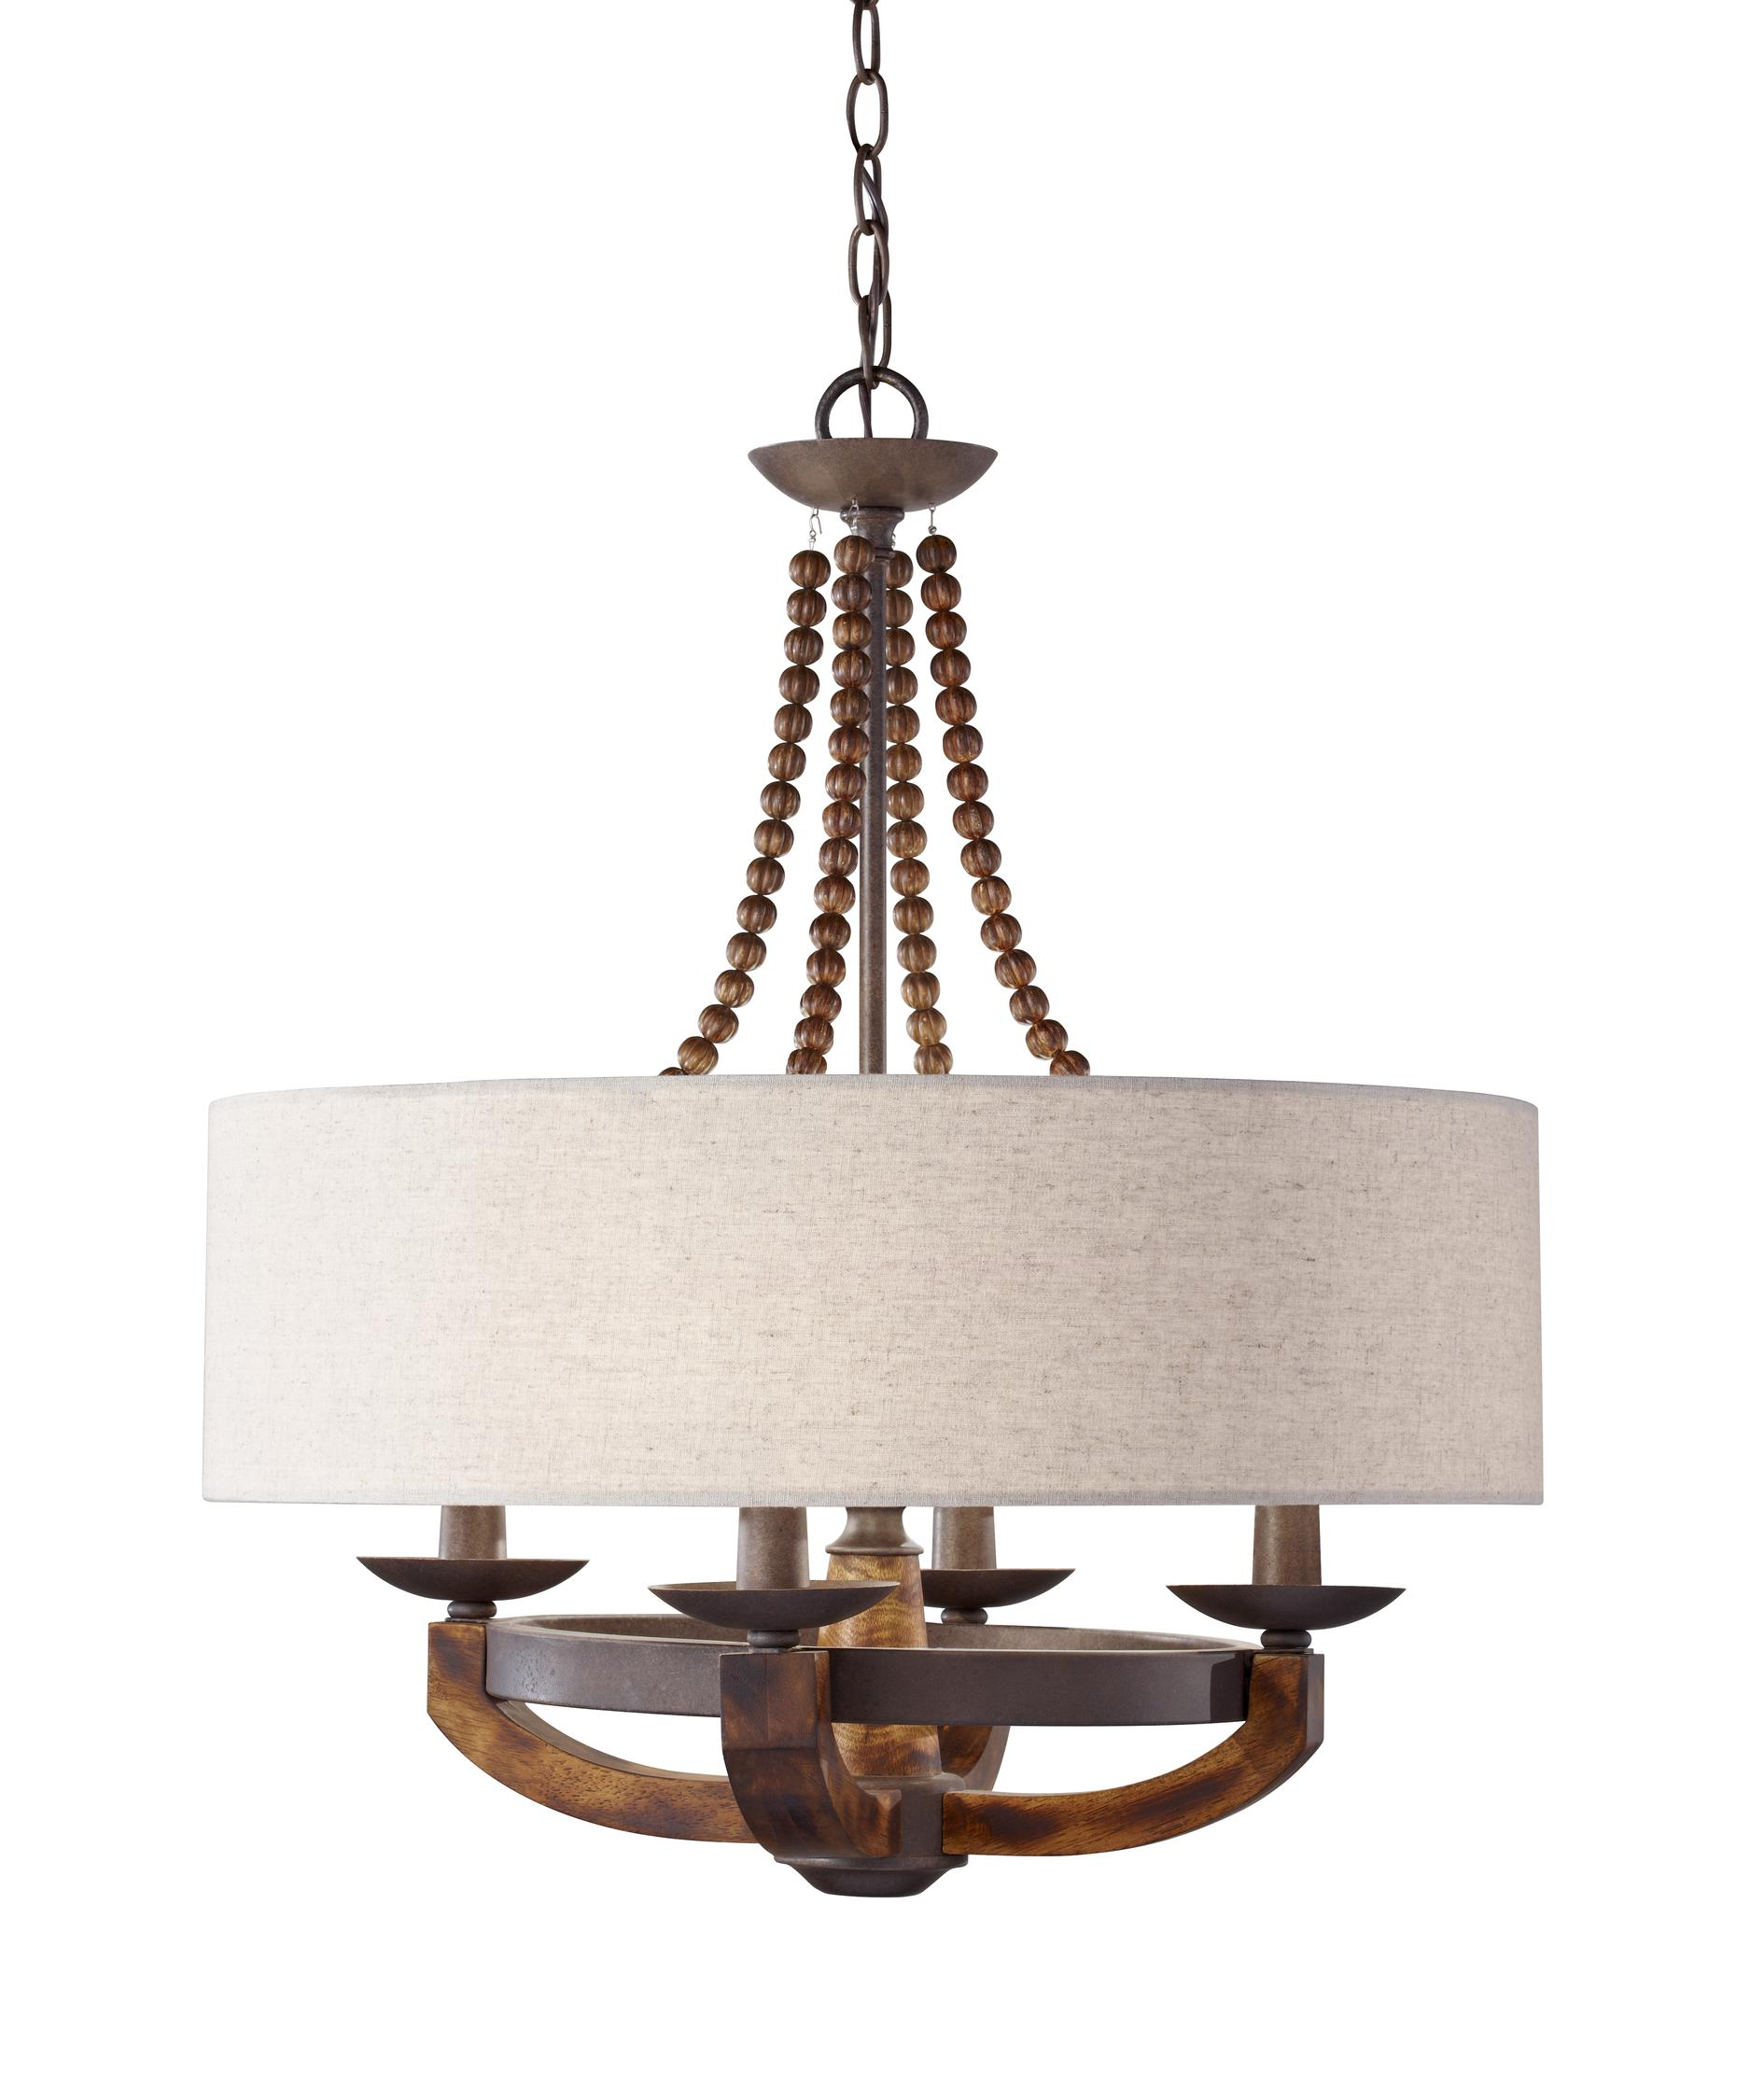 Murray Feiss Adan 22 Inch Wide 4 Light Chandelier – Murray Feiss Chandeliers